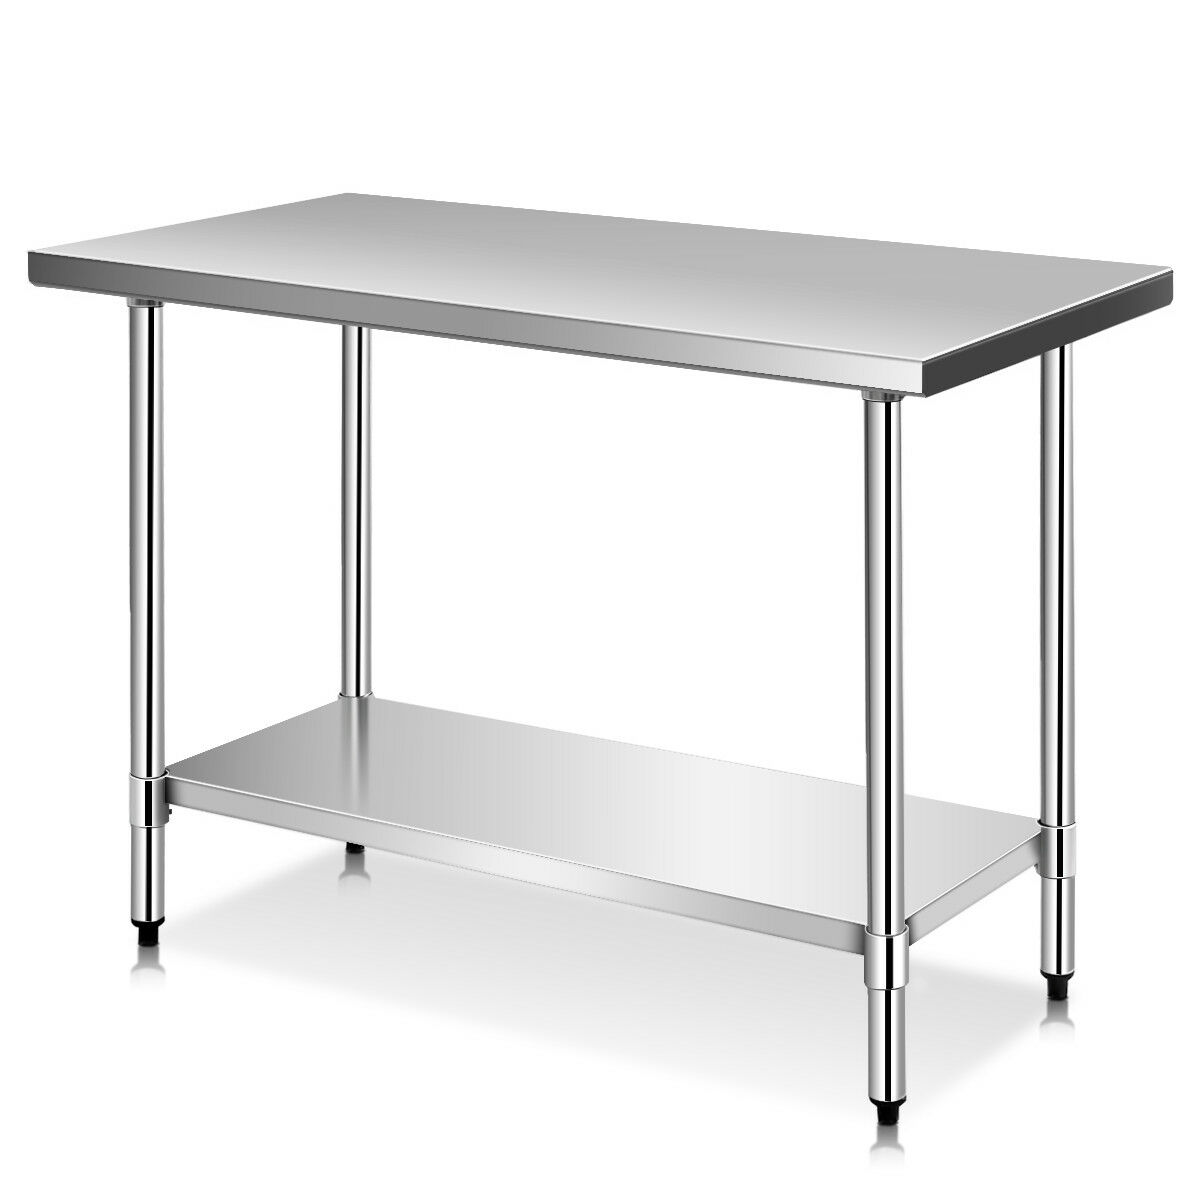 Costway 24'' x 48'' Stainless Steel Food Prep & Work Table Commercial Kitchen Worktable